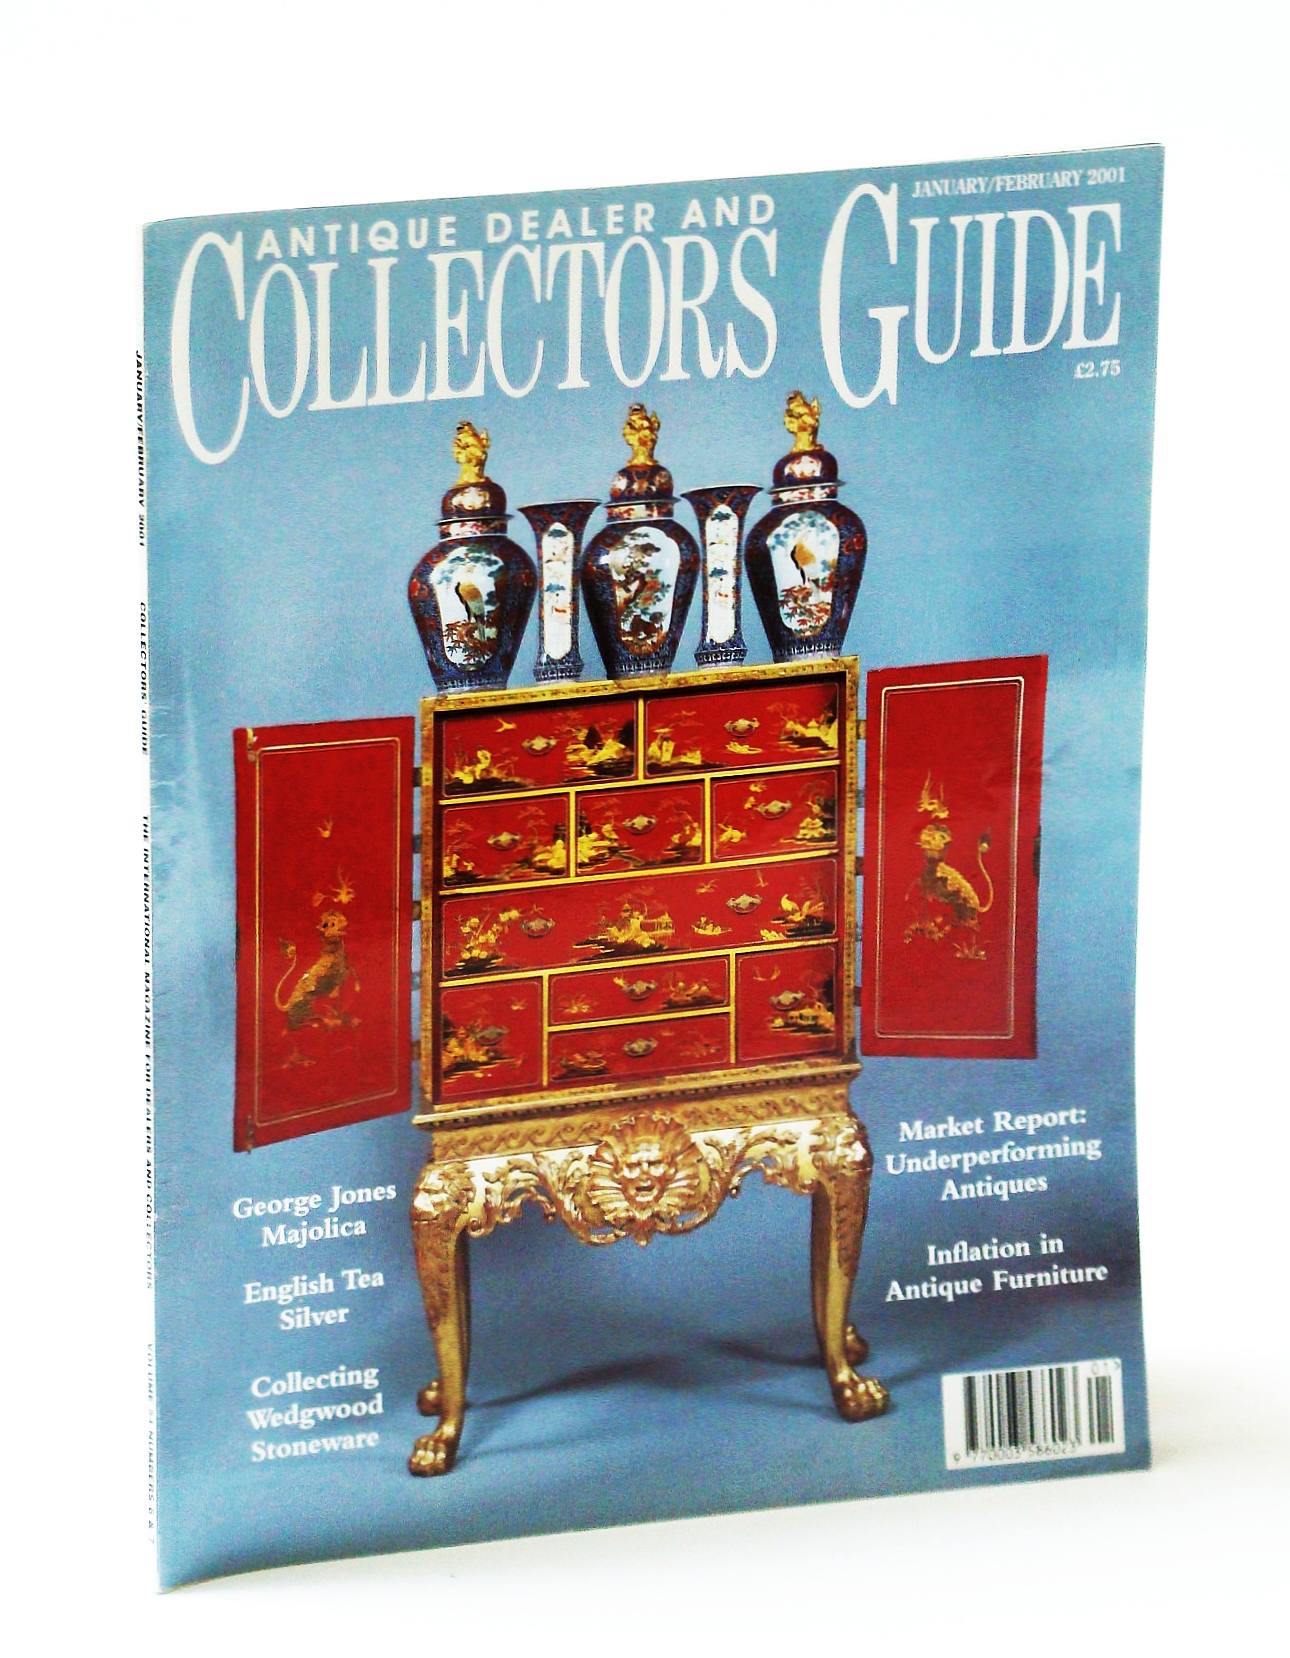 Image for Antique Dealer and Collectors Guide Magazine, January / February (Jan. / Feb.) 2001 - The Majolica of George Jones